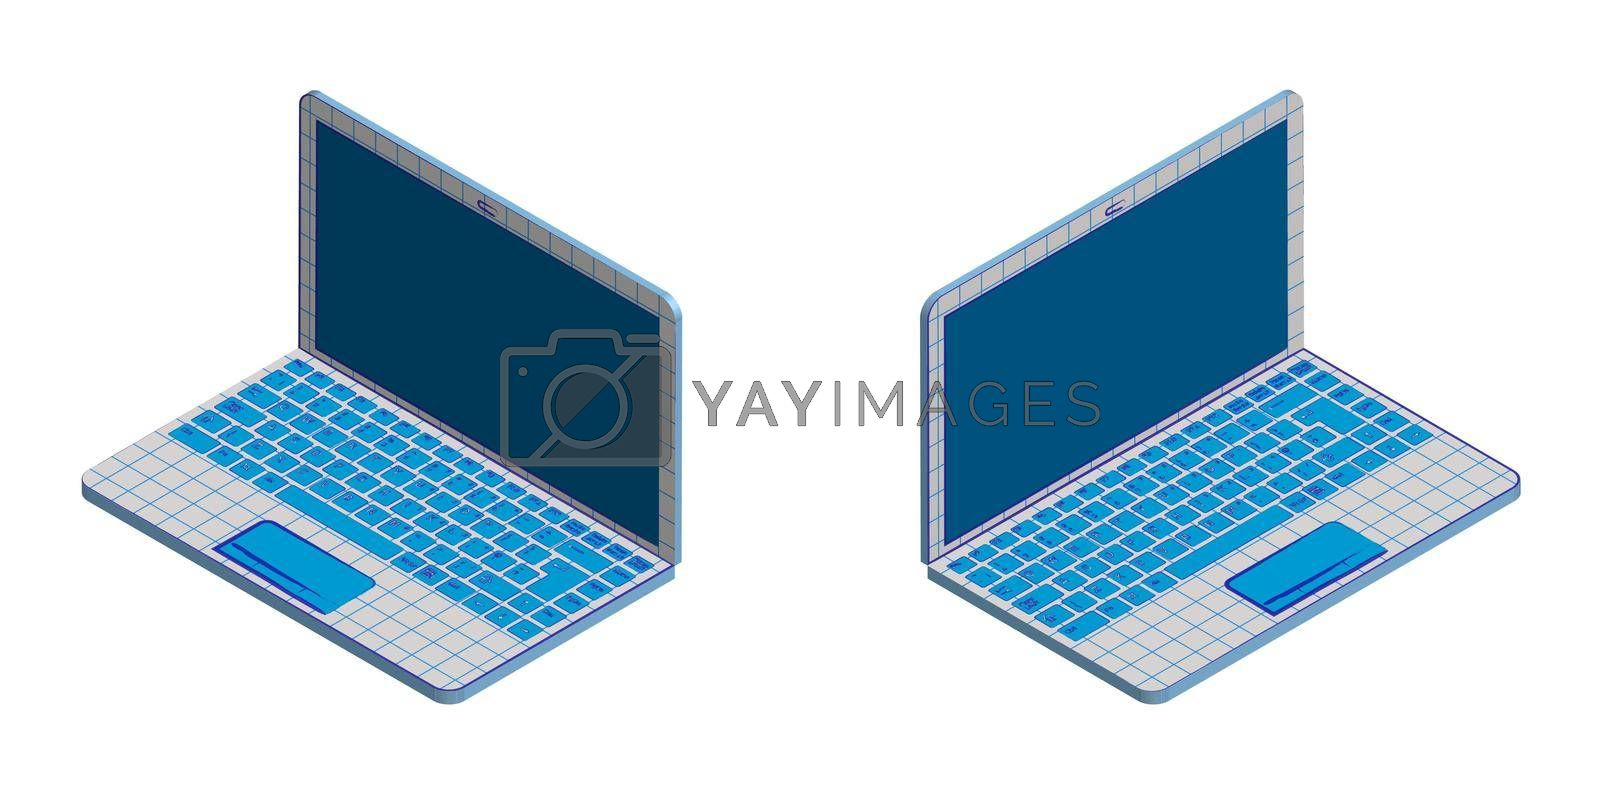 Isometric, portable laptop in an original style. Squared school notebook with imitation ink drawing. Isolated vector on white background